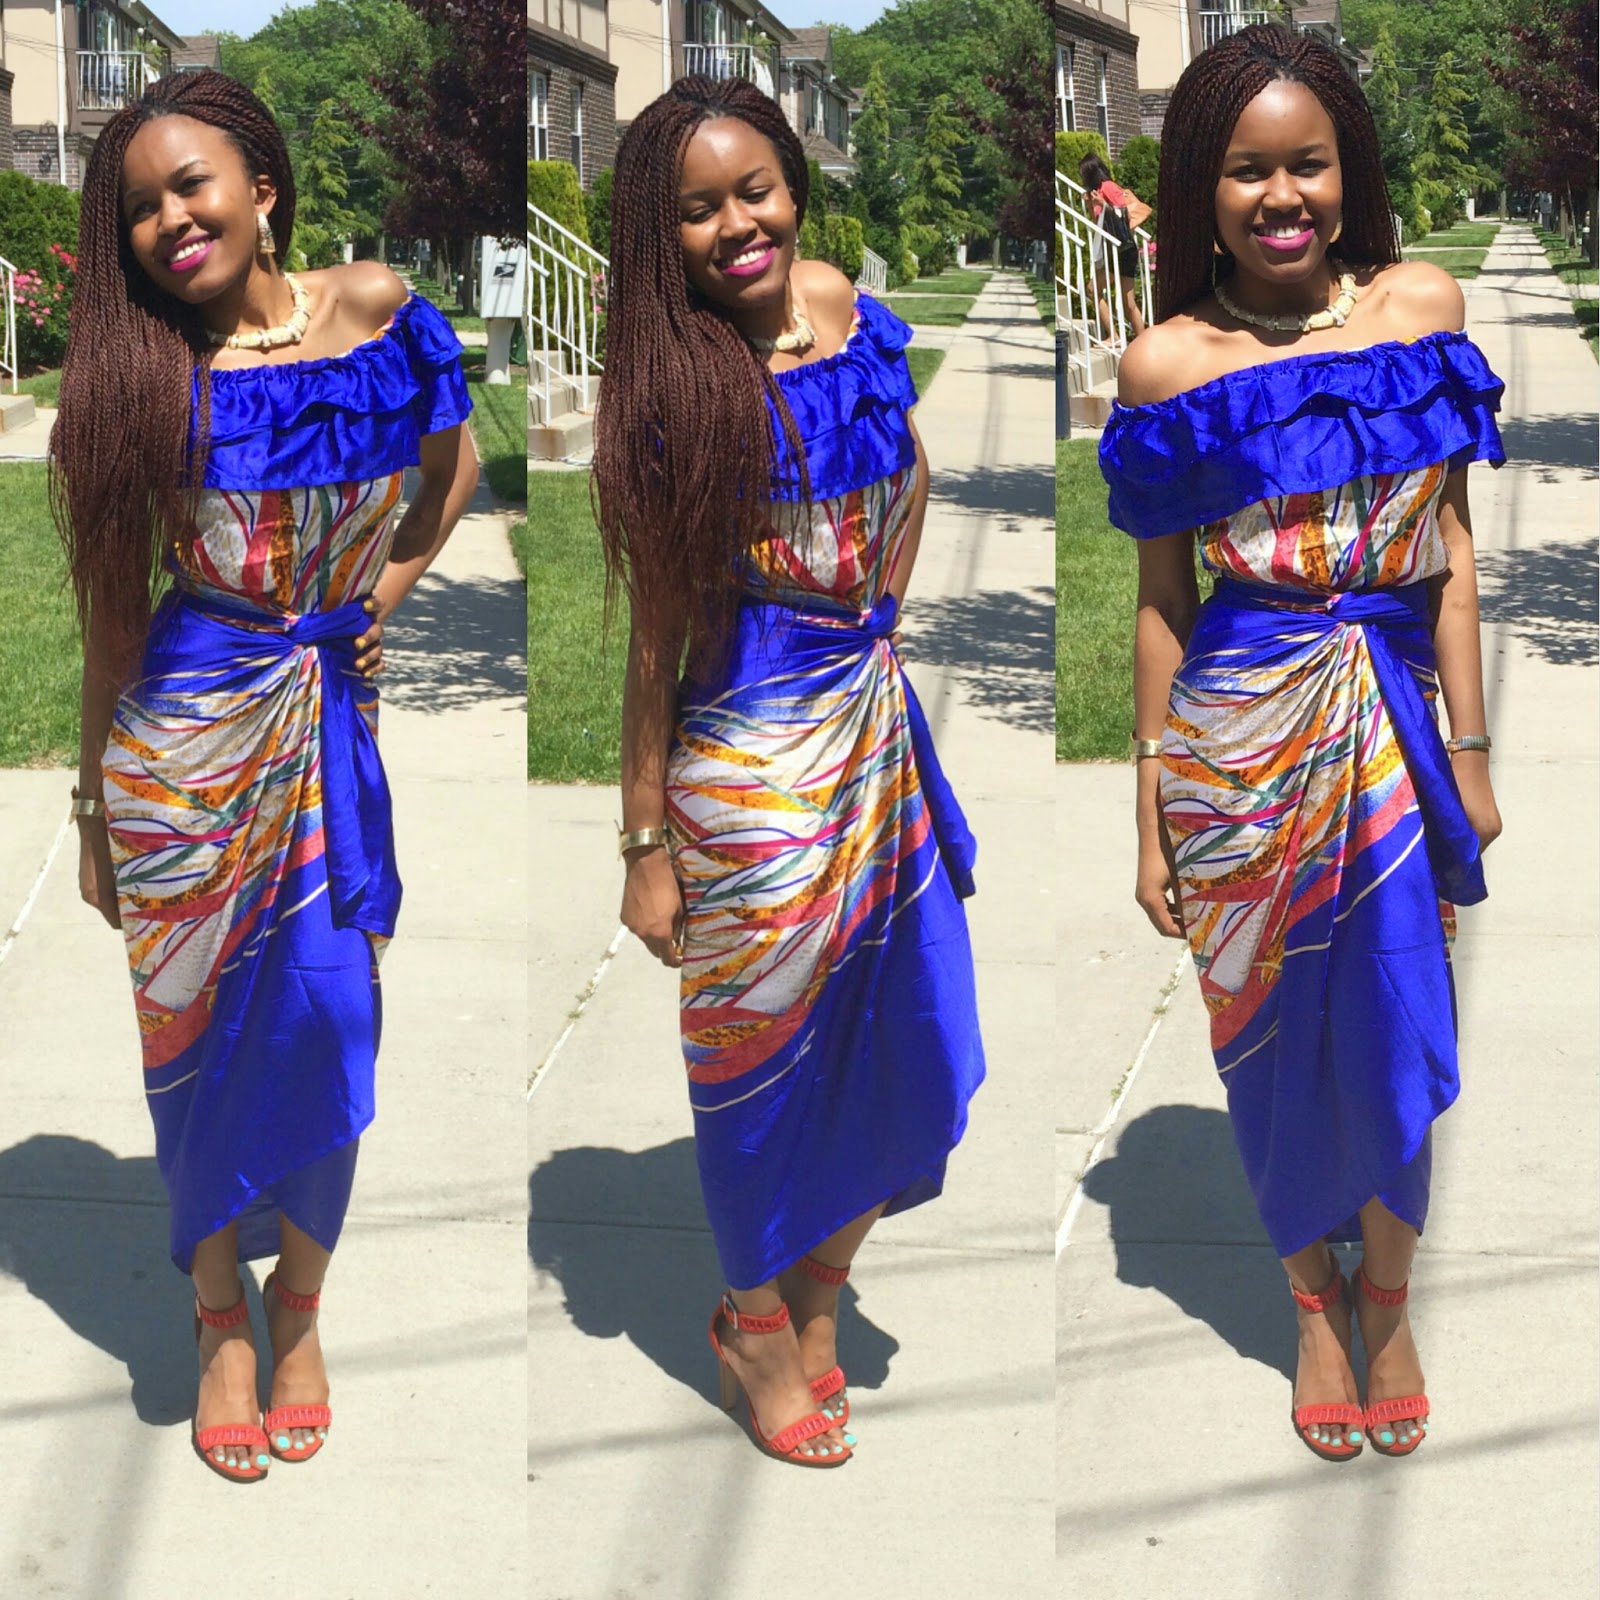 475484818b76 The wedding guest  African Fashion - Stylediarybyosy